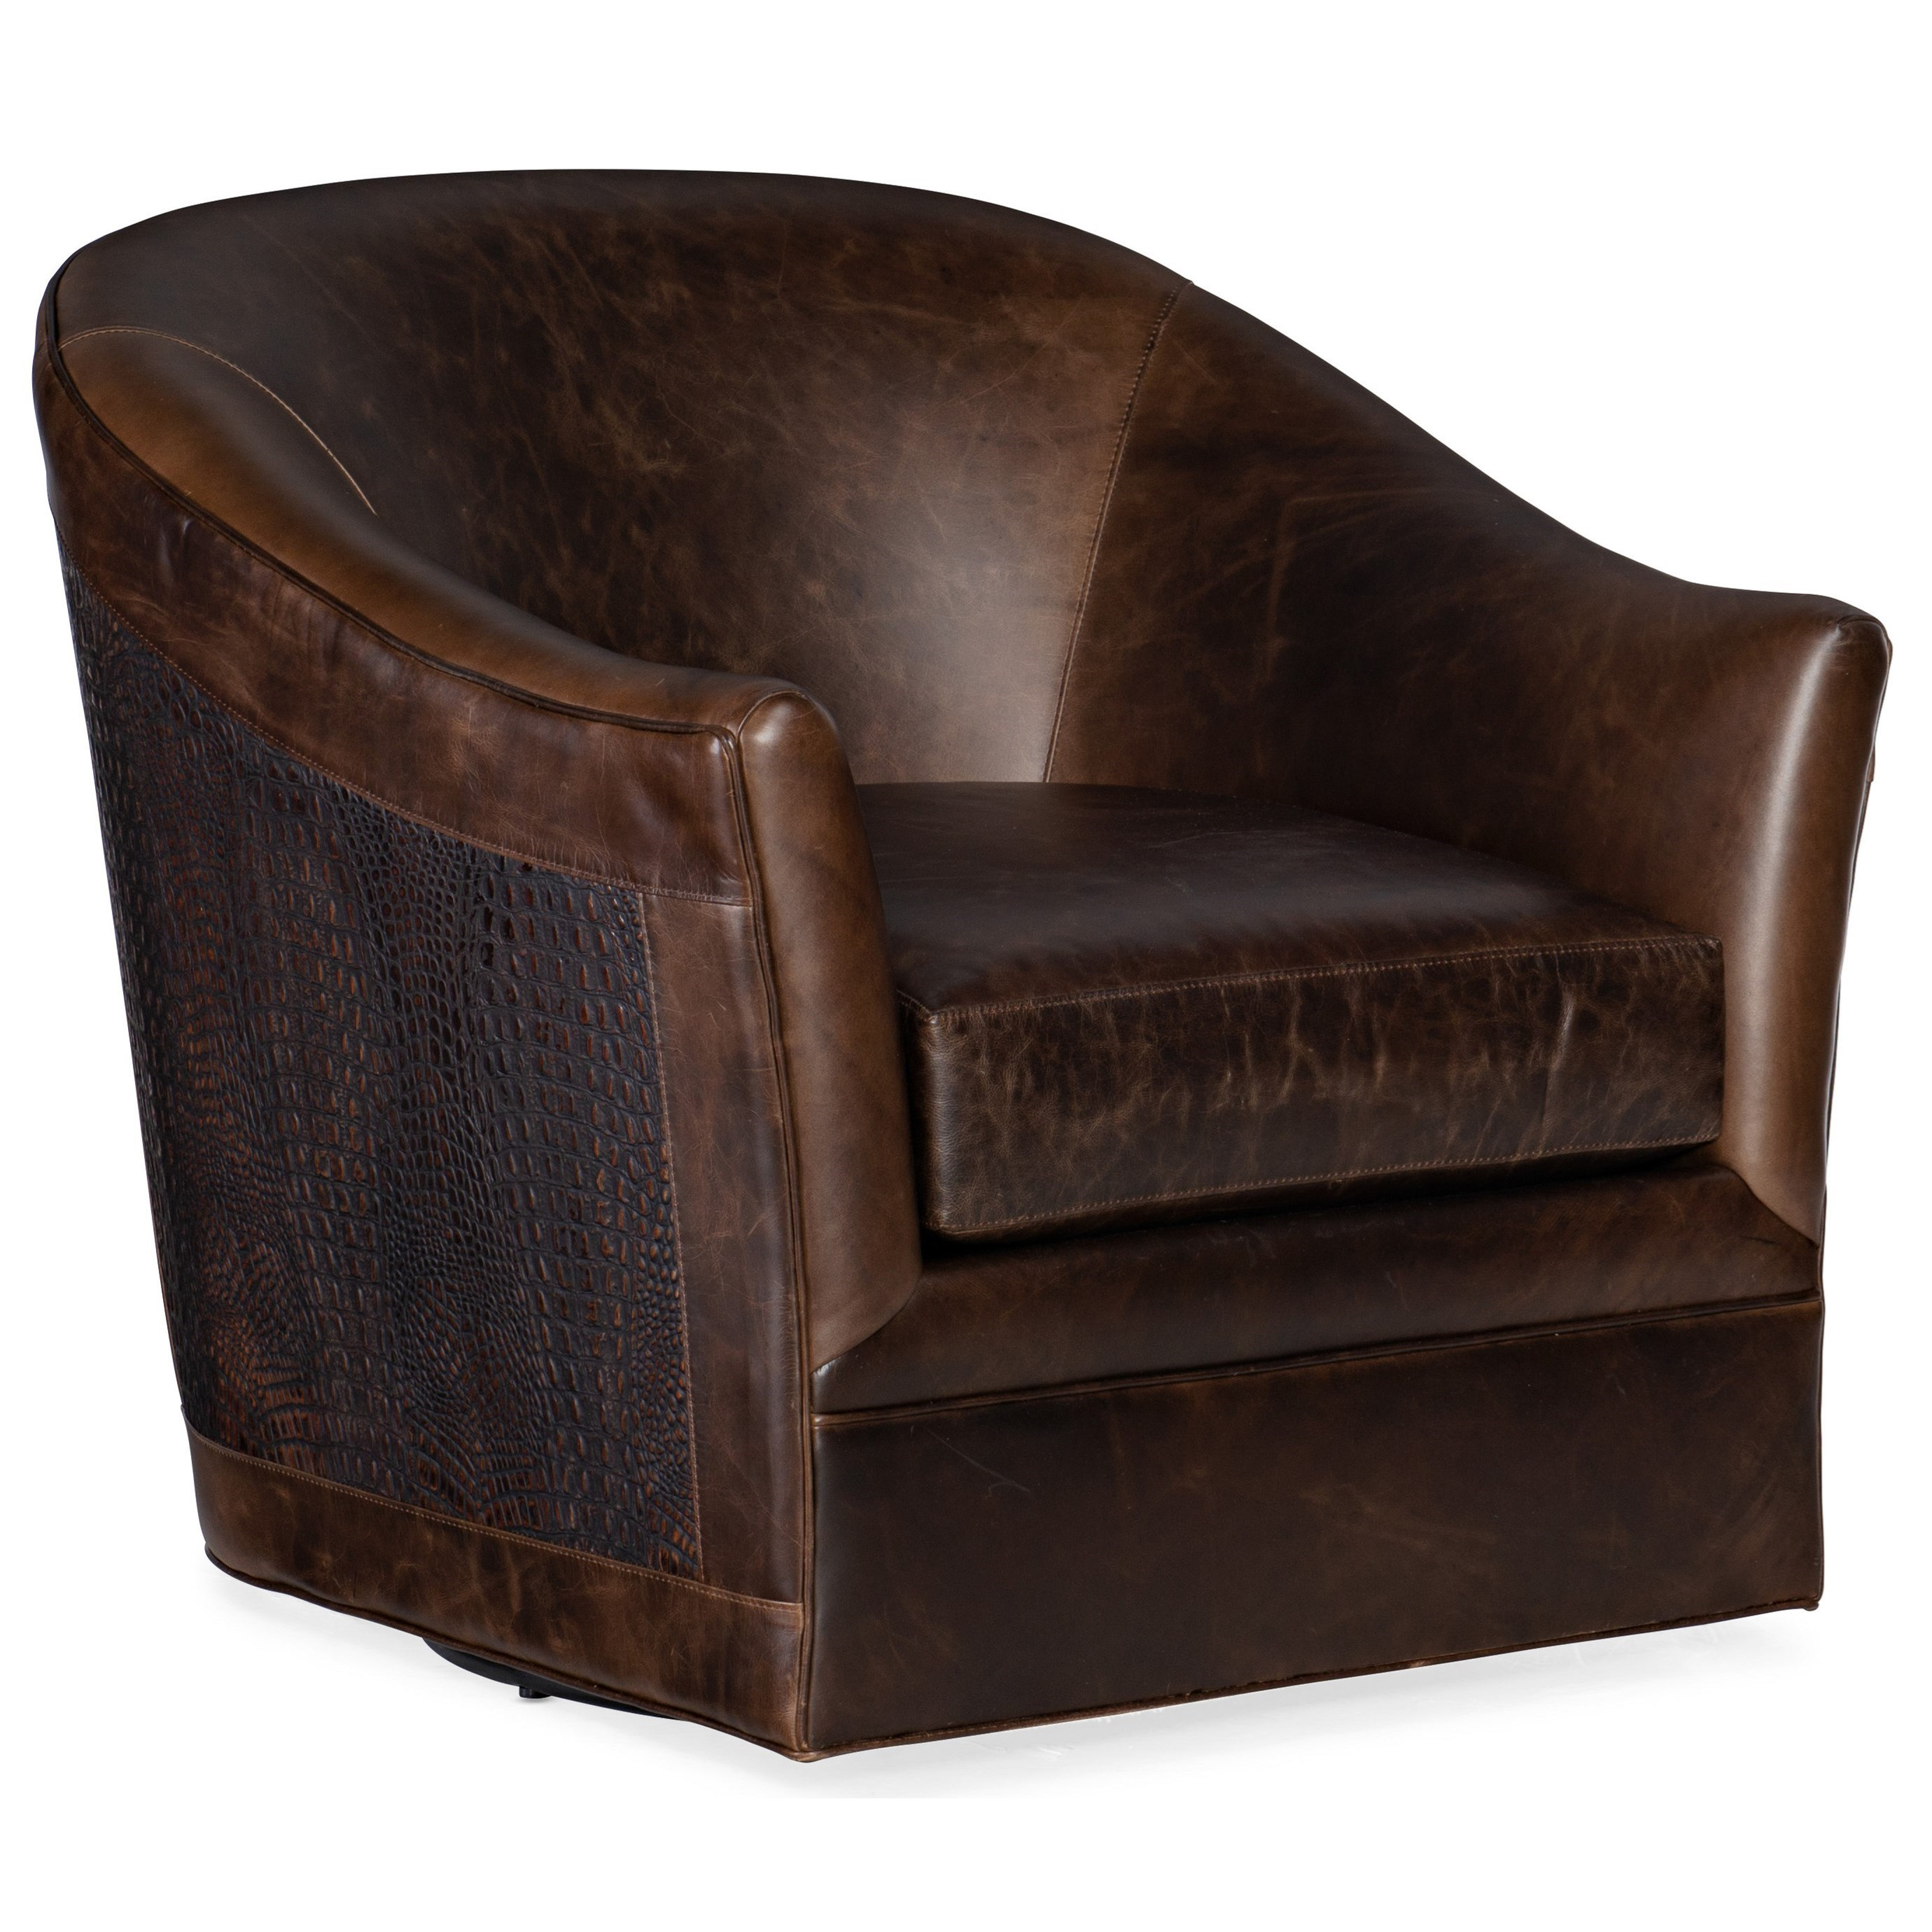 Club Chairs Morrison Swivel Club Chair by Hooker Furniture at Alison Craig Home Furnishings